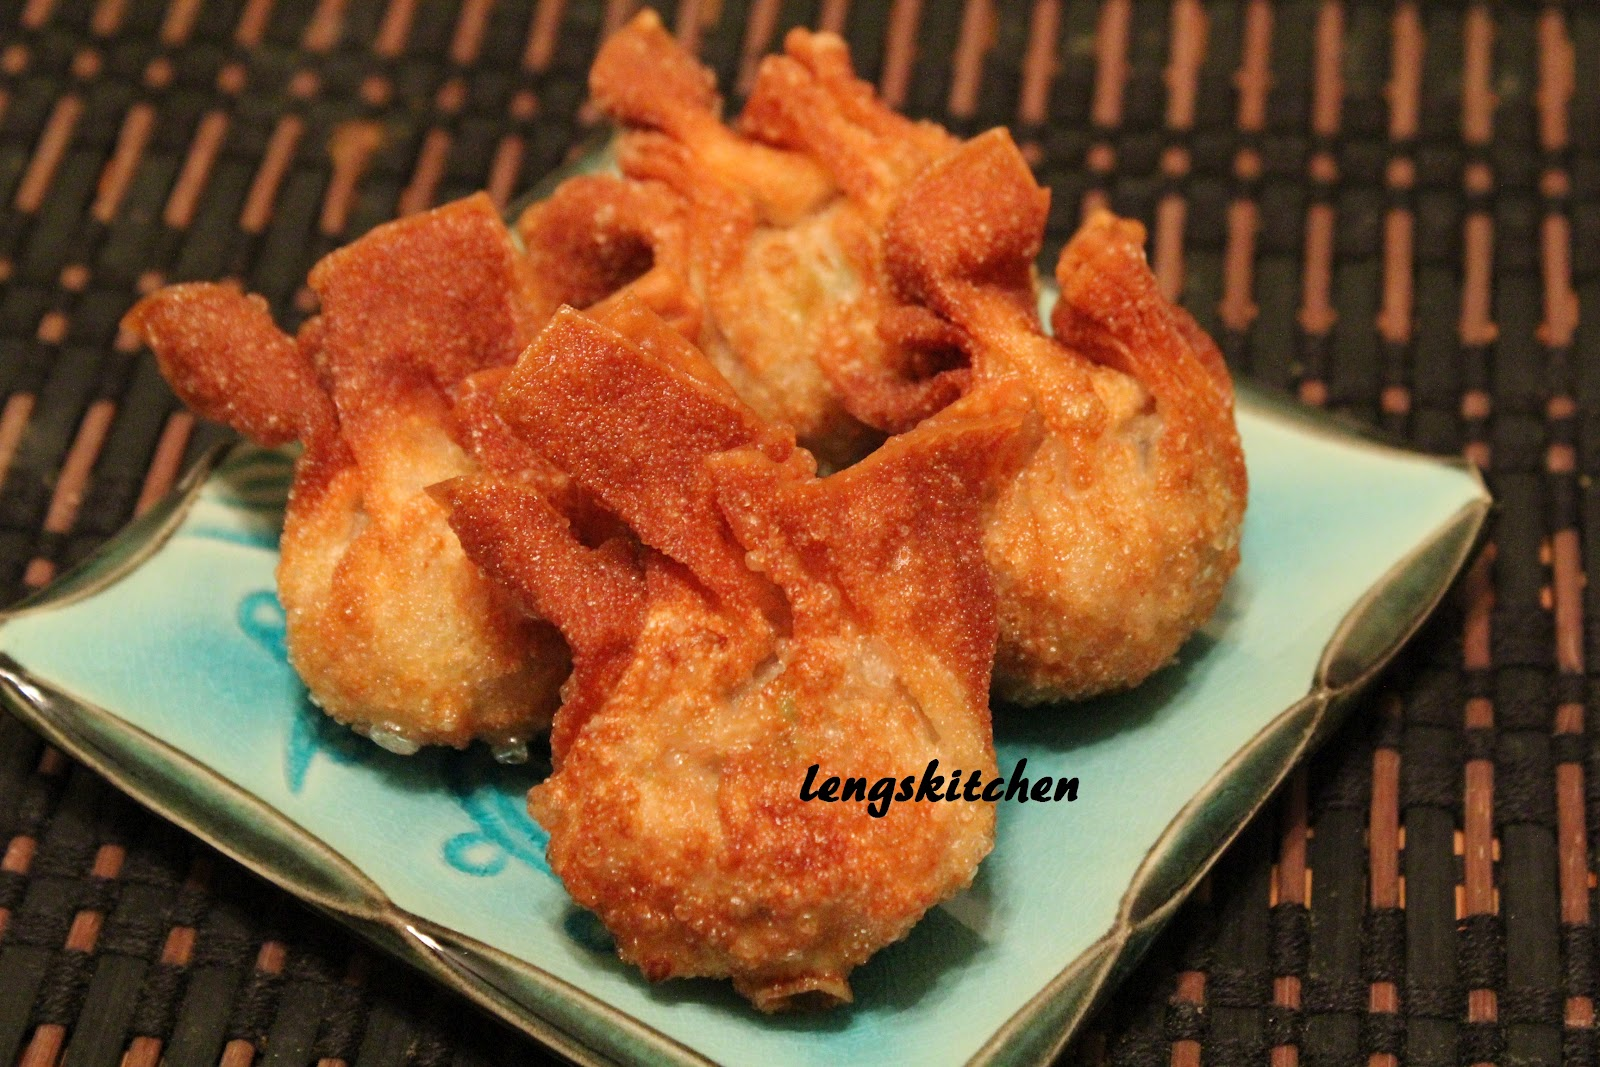 Kitchen Chaos: Fried Pork and Shrimp Wonton 炸云吞